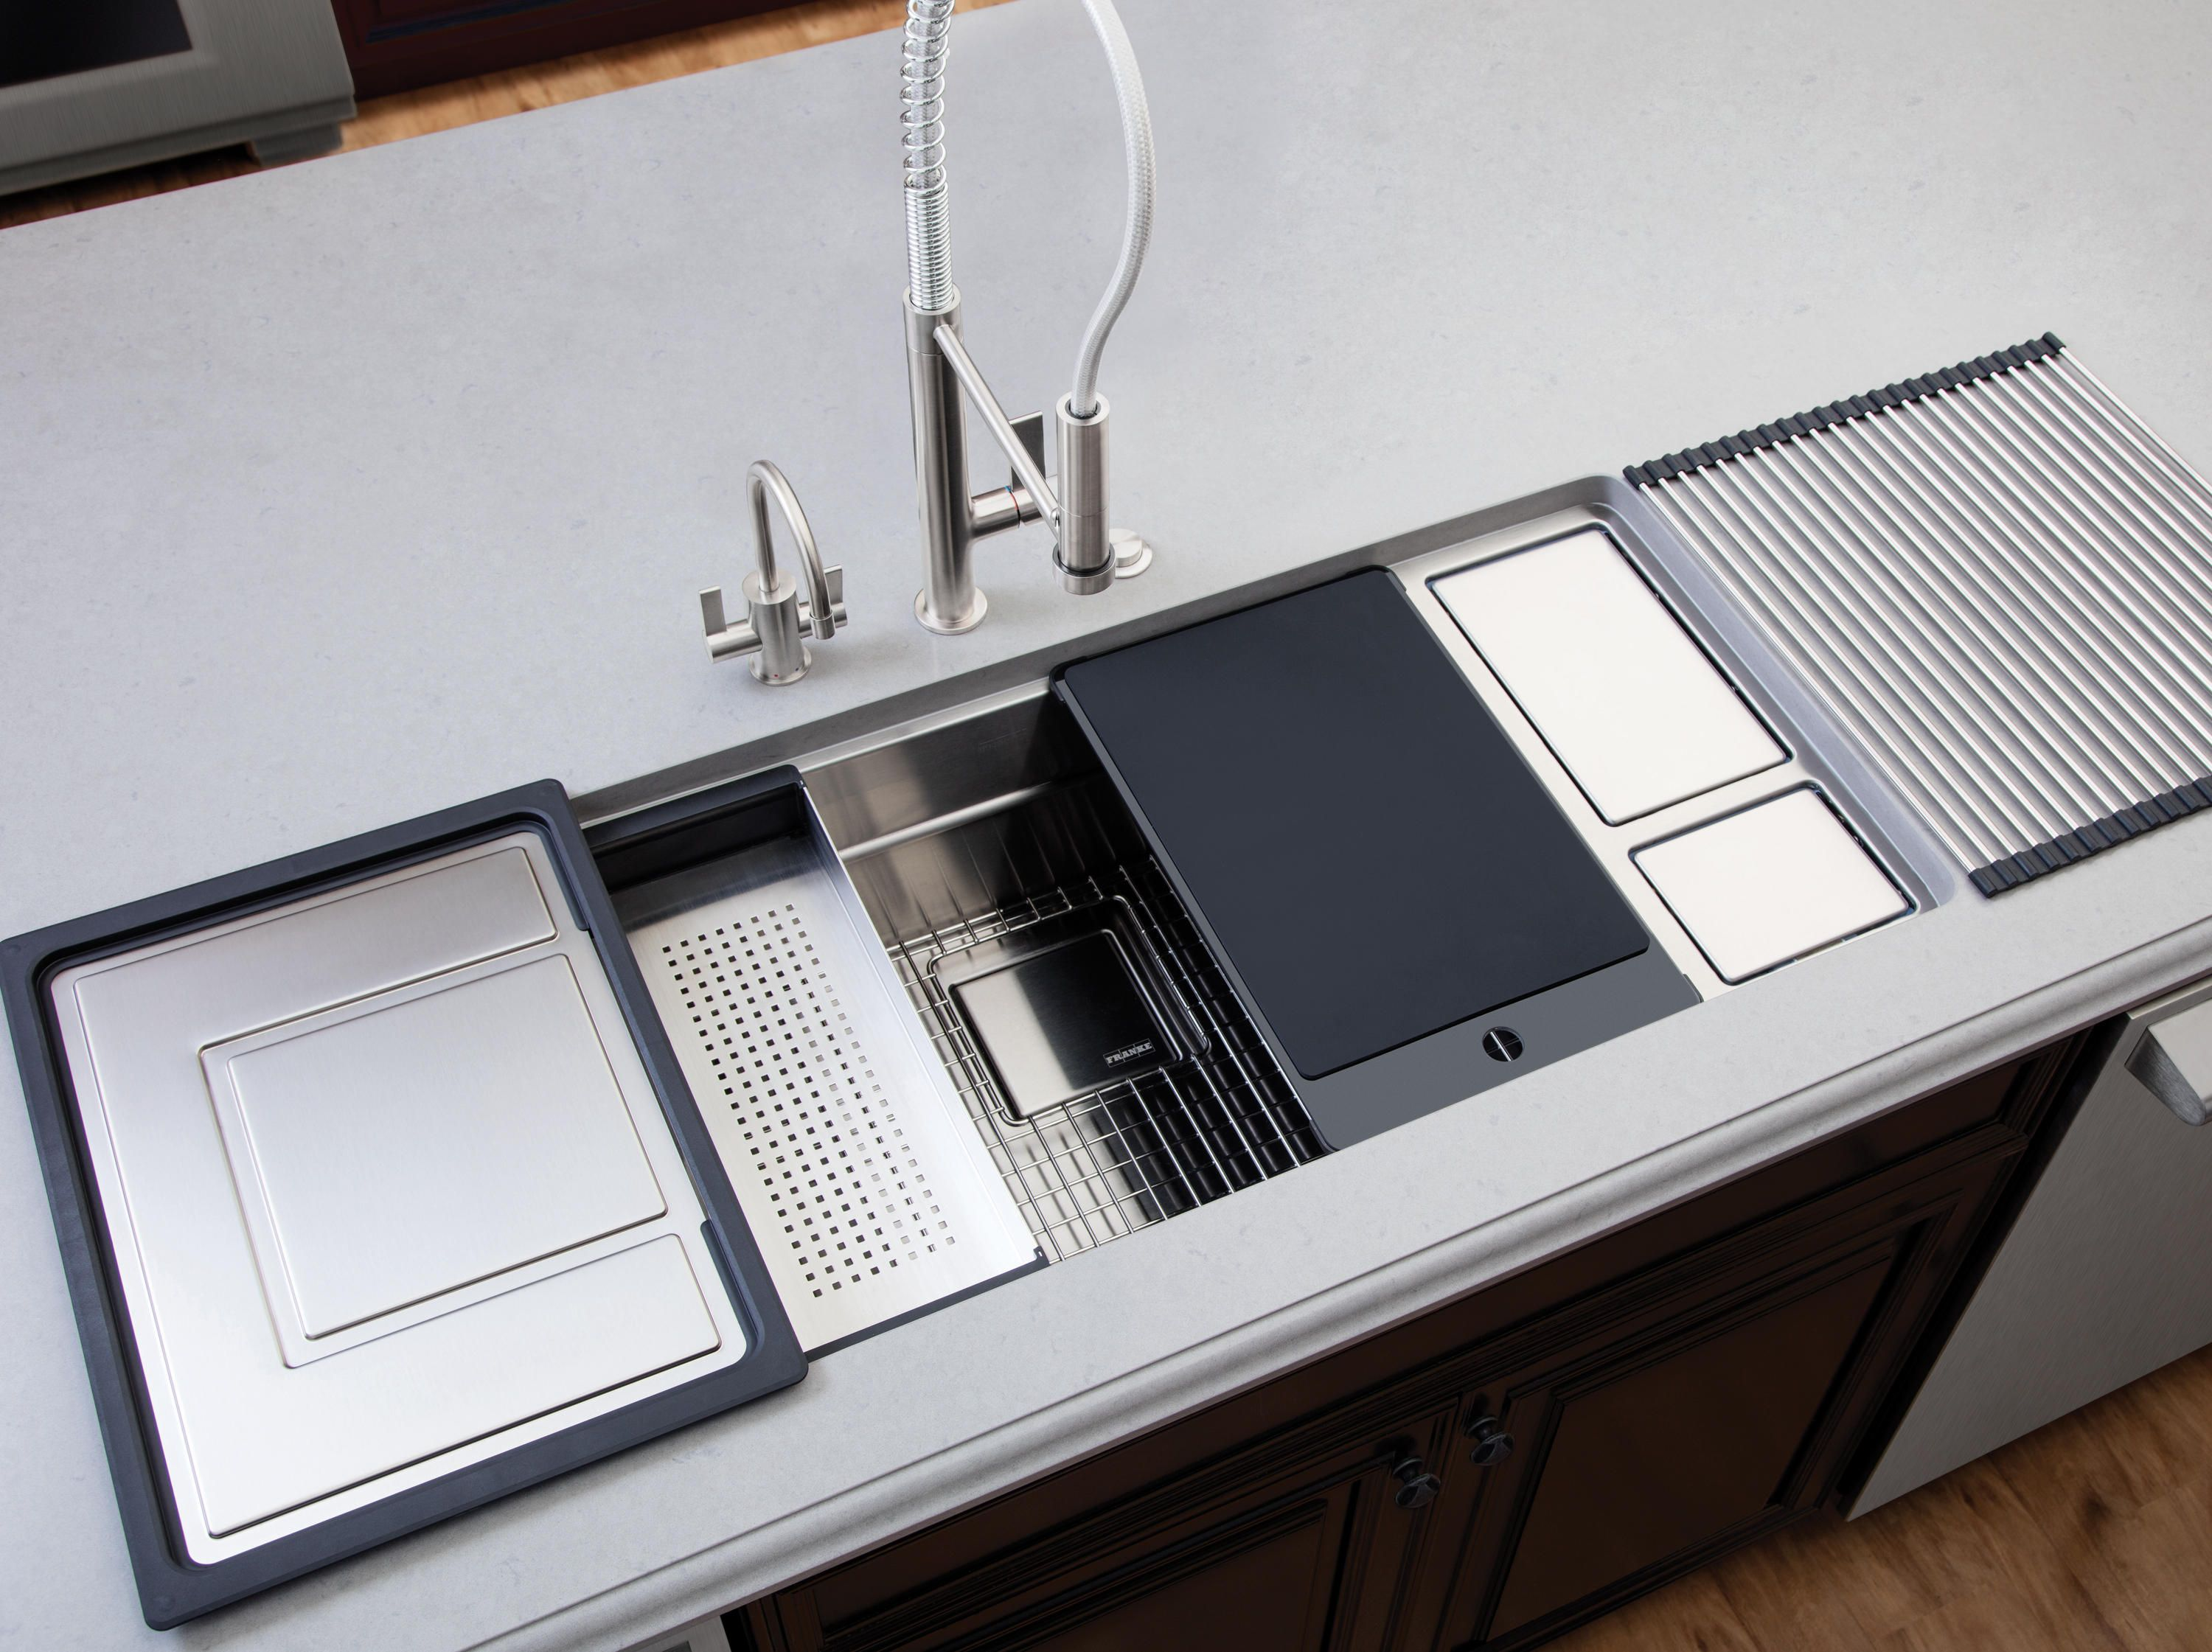 Chef center sinks stainless steel kitchen sinks from franke kitchen systems architonic